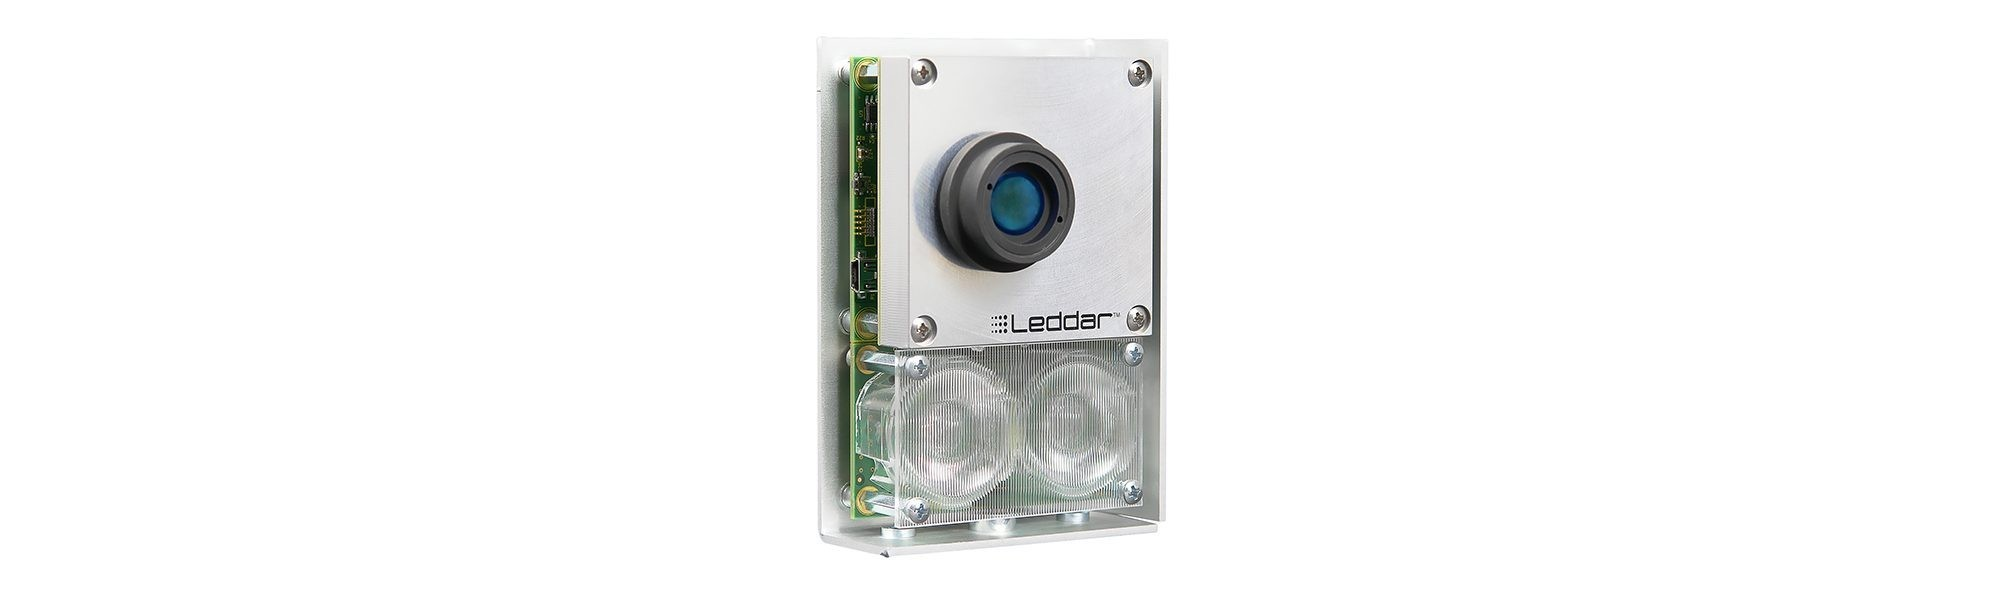 Leddar Evaluation Kit Sensor Module